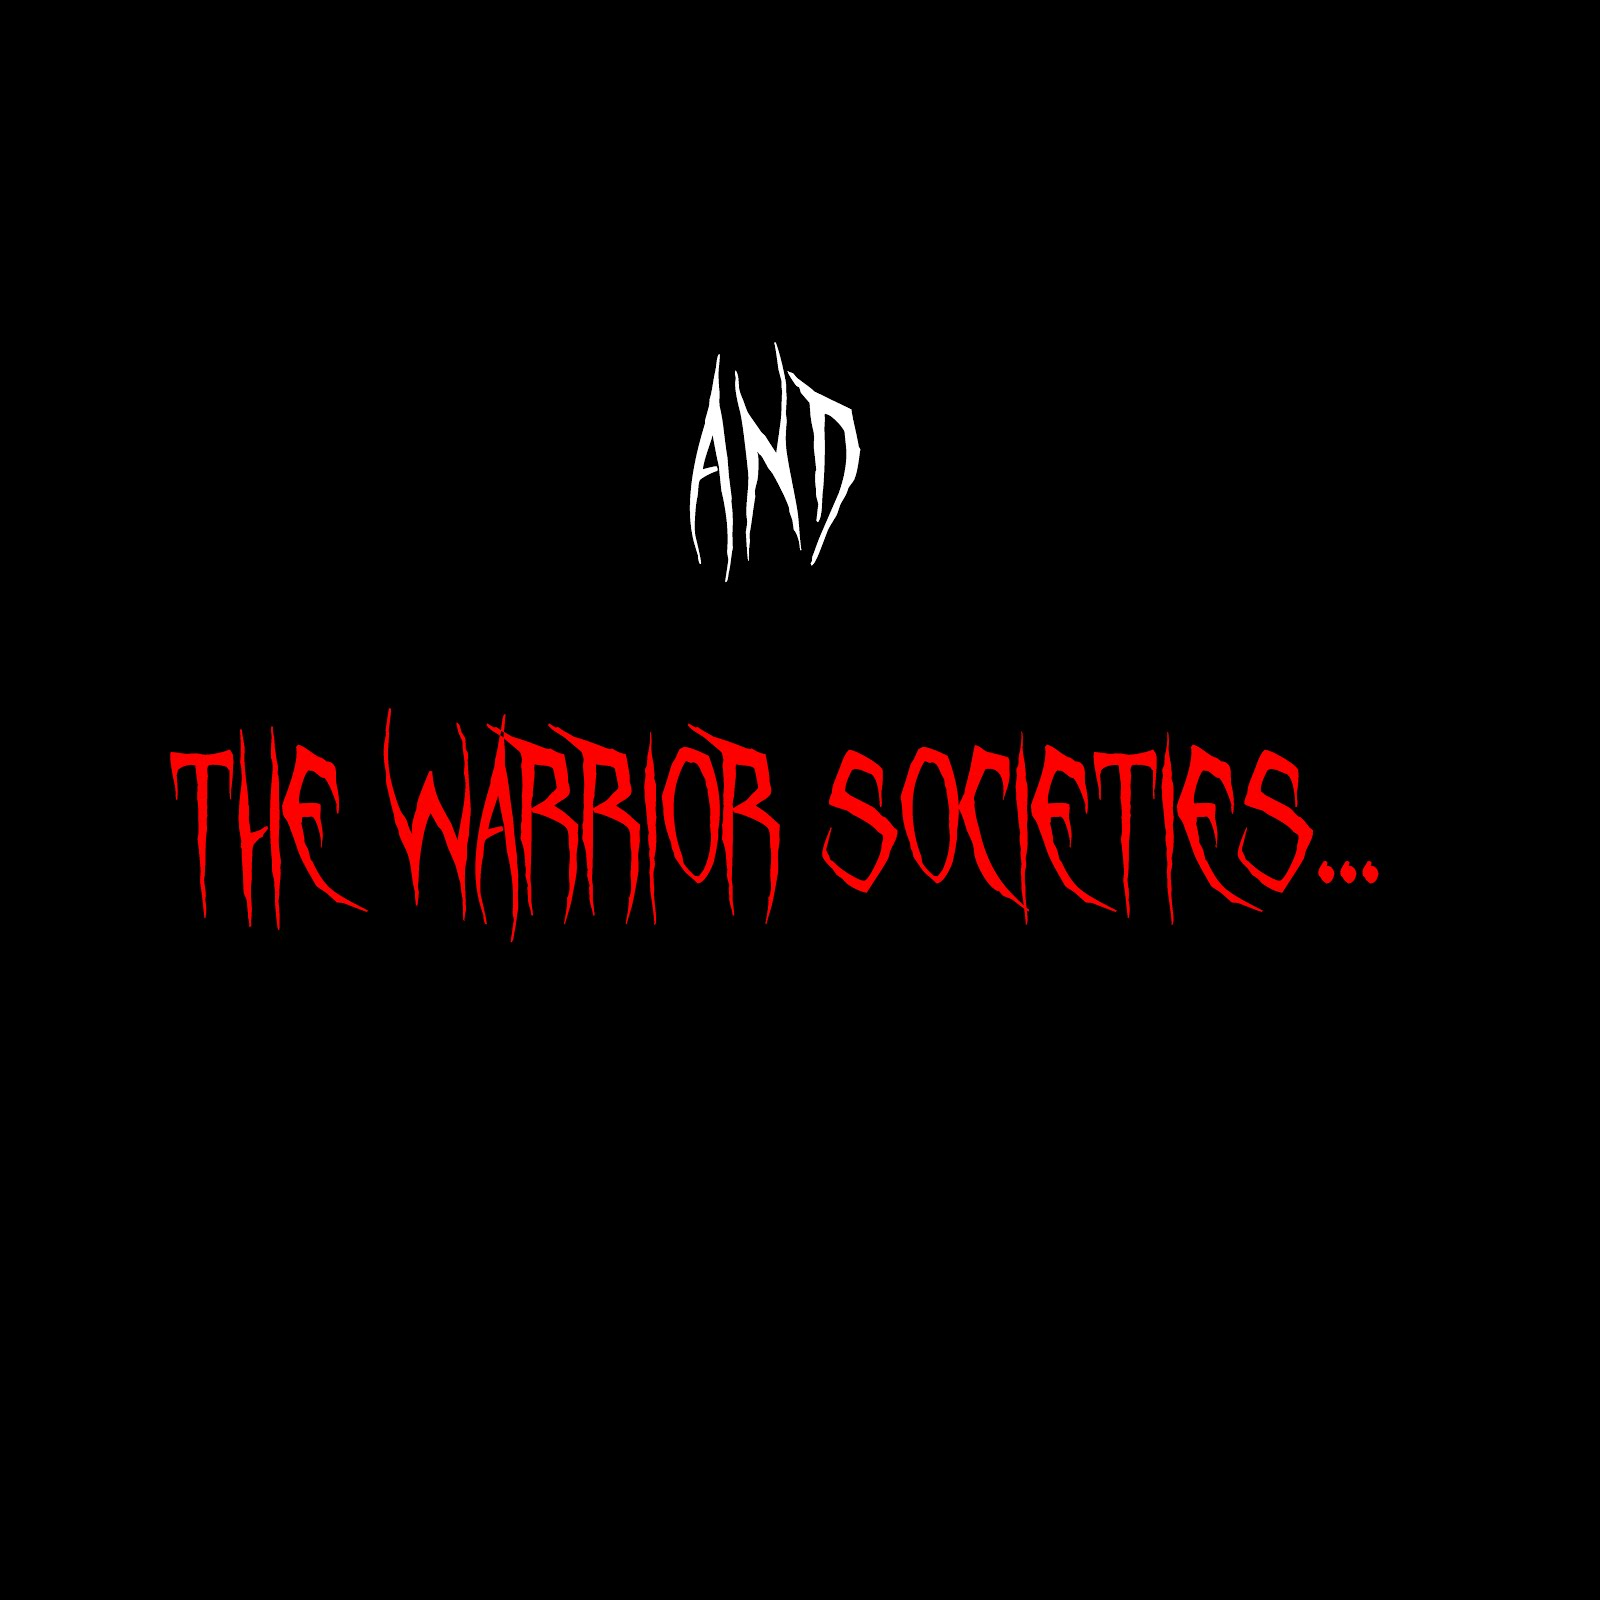 Warrior Societies